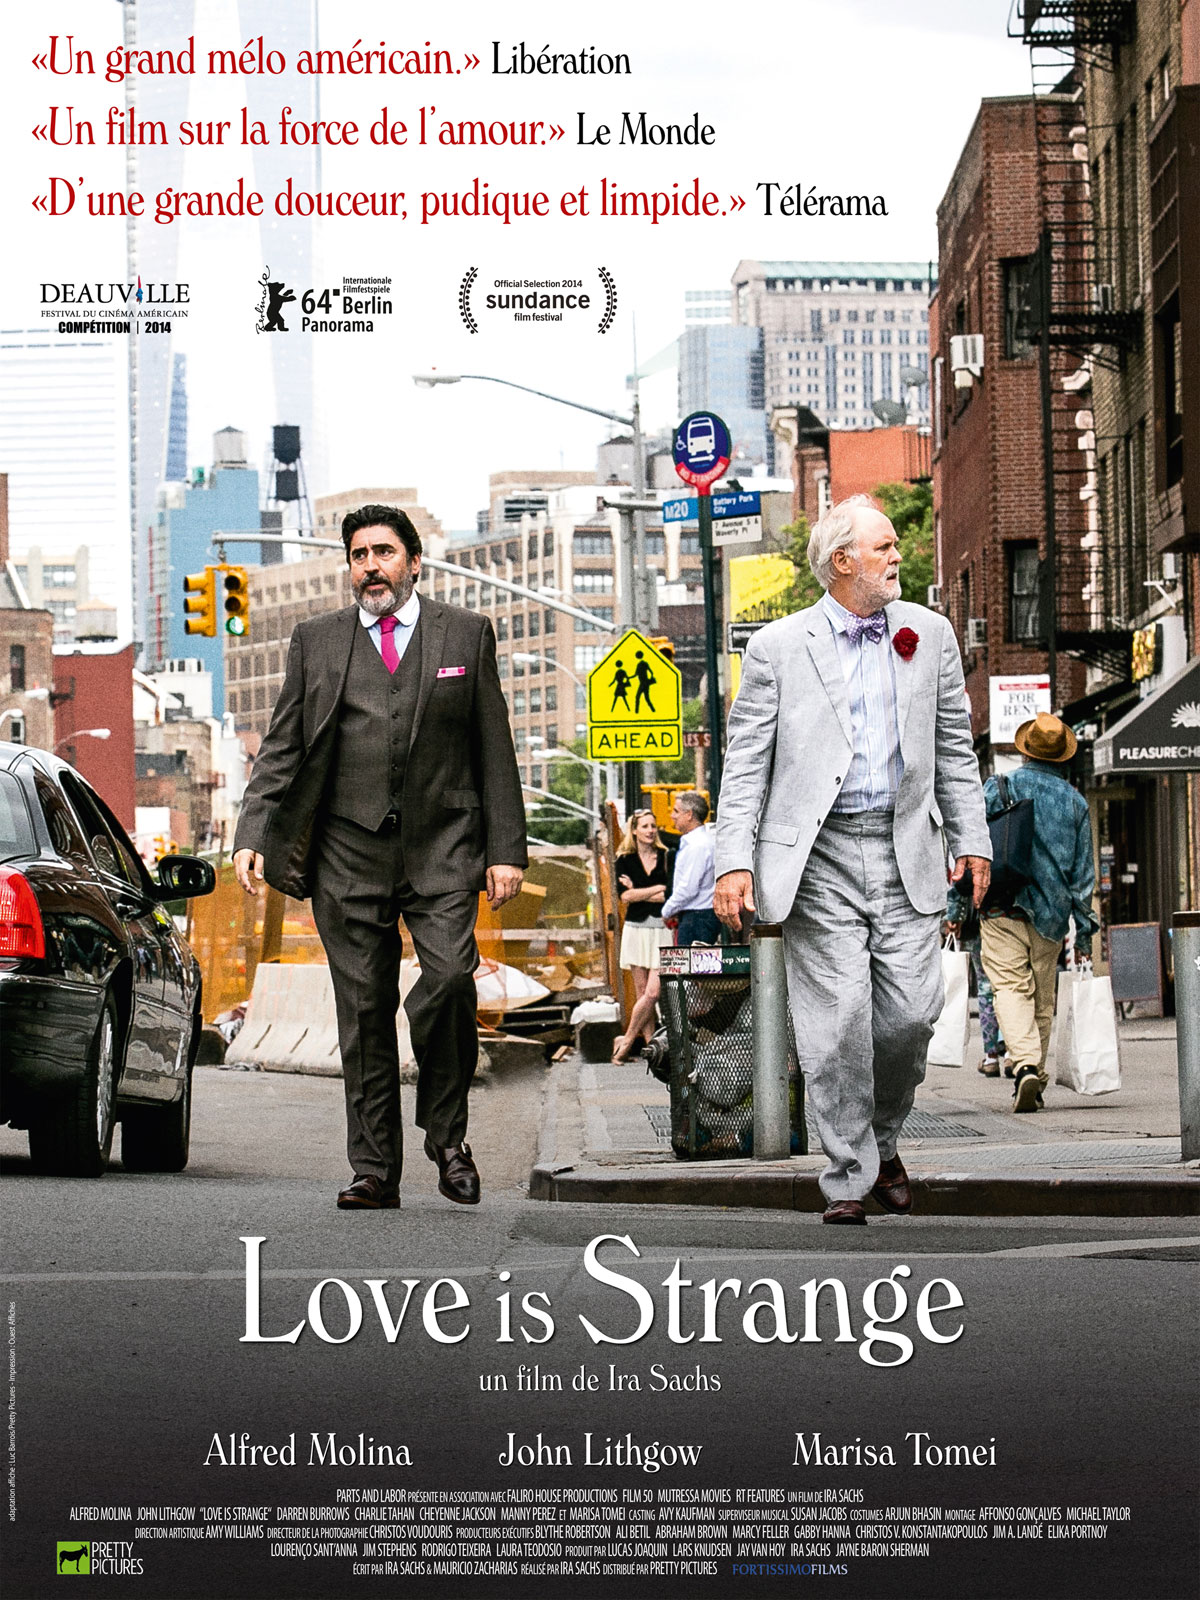 O Amor é Estranho - Love is Strange - Poster Internacional